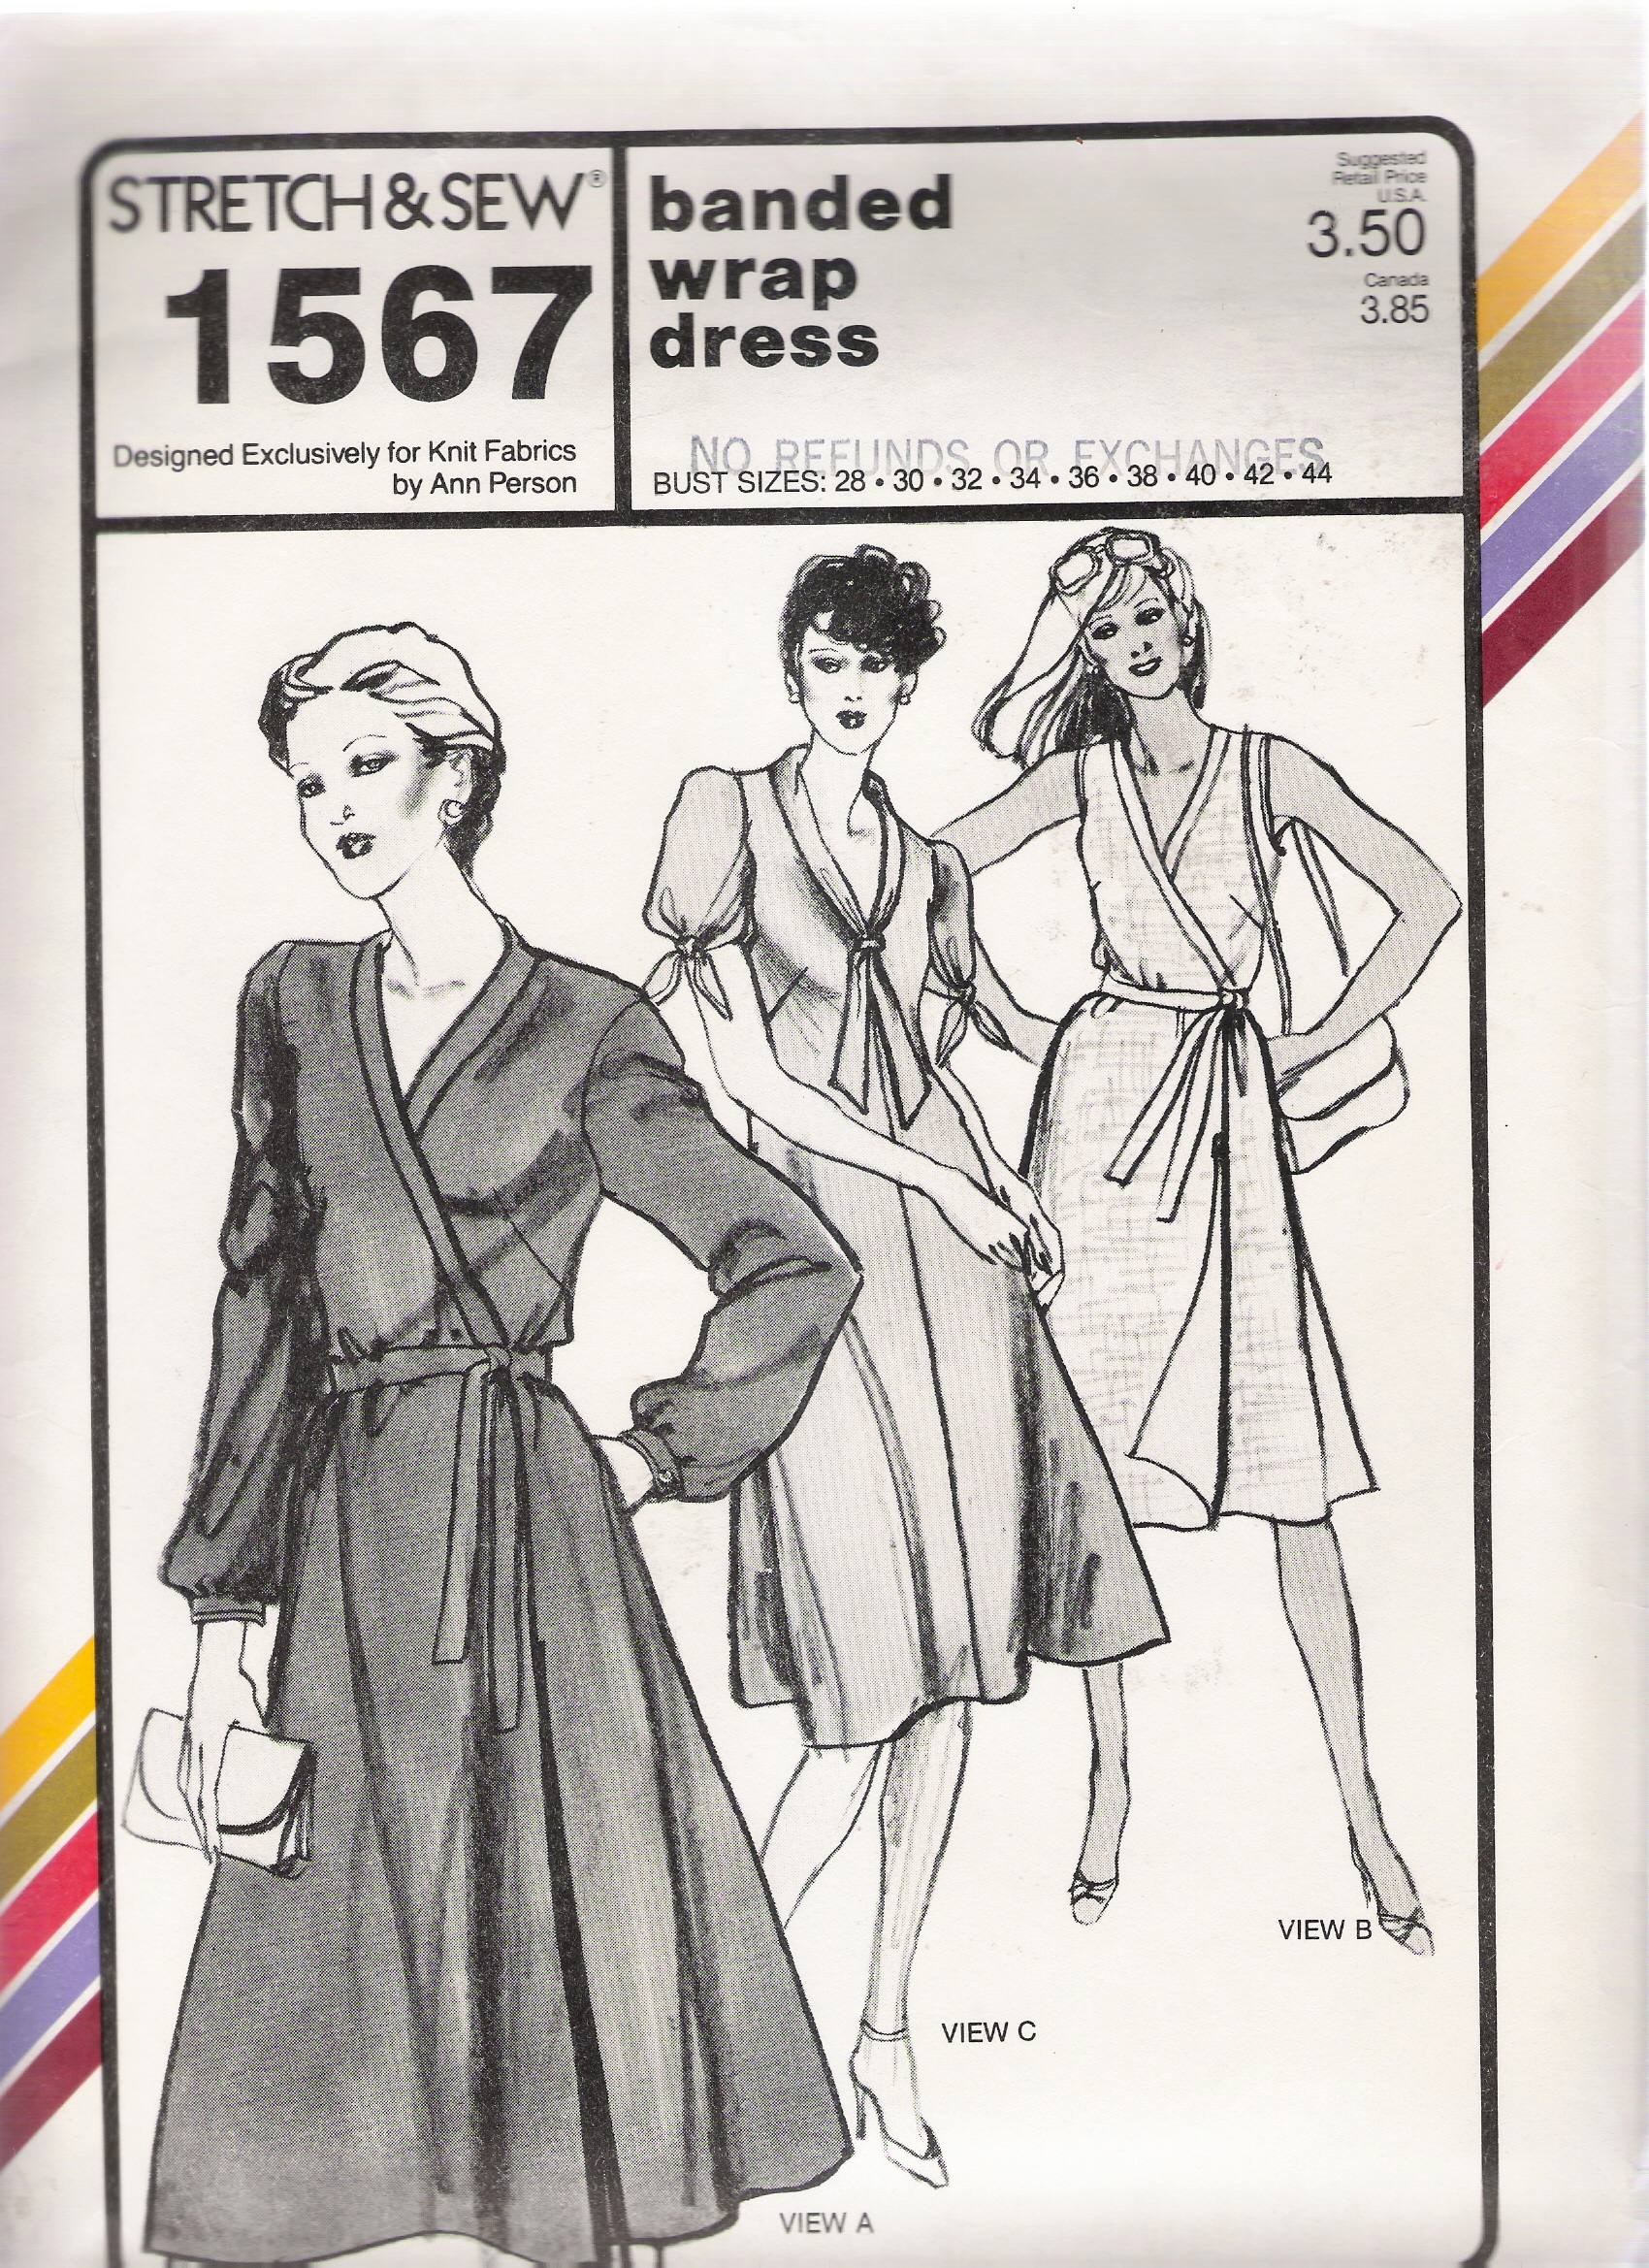 Stretch & Sew 1567 | Vintage Sewing Patterns | FANDOM powered by Wikia